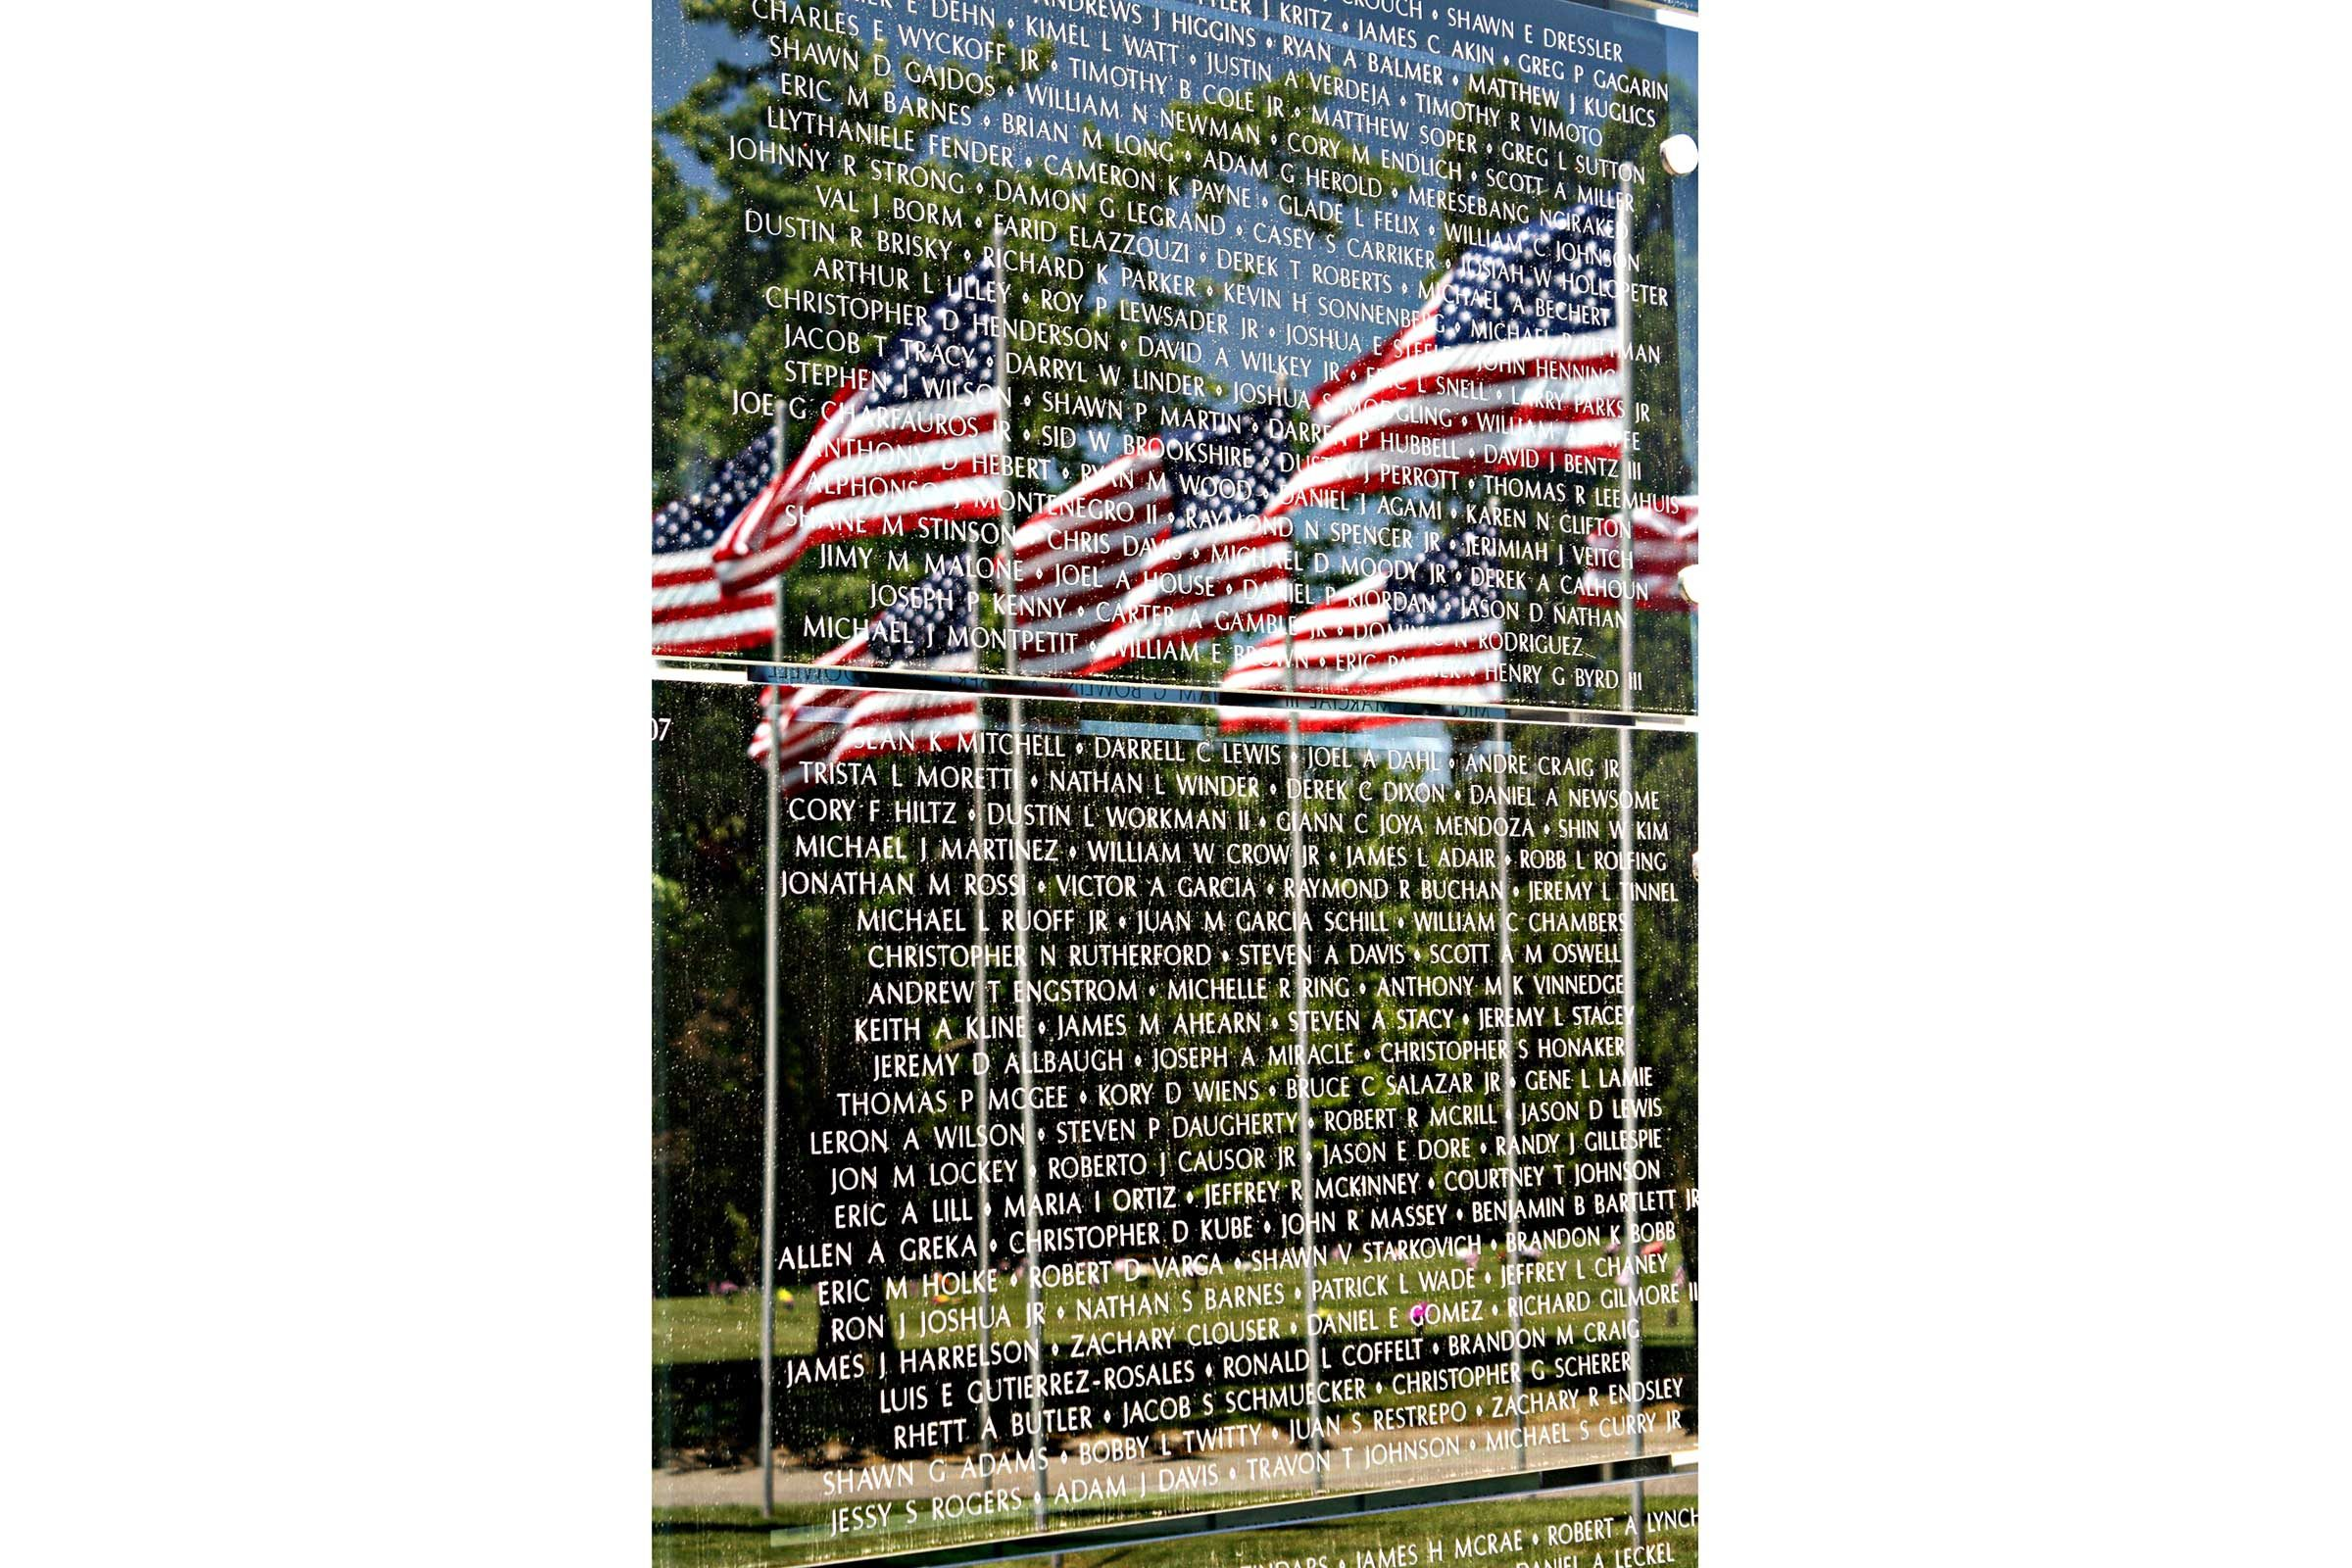 american flags reflected in the glossy surface of a memorial listing the names of those to be remembered